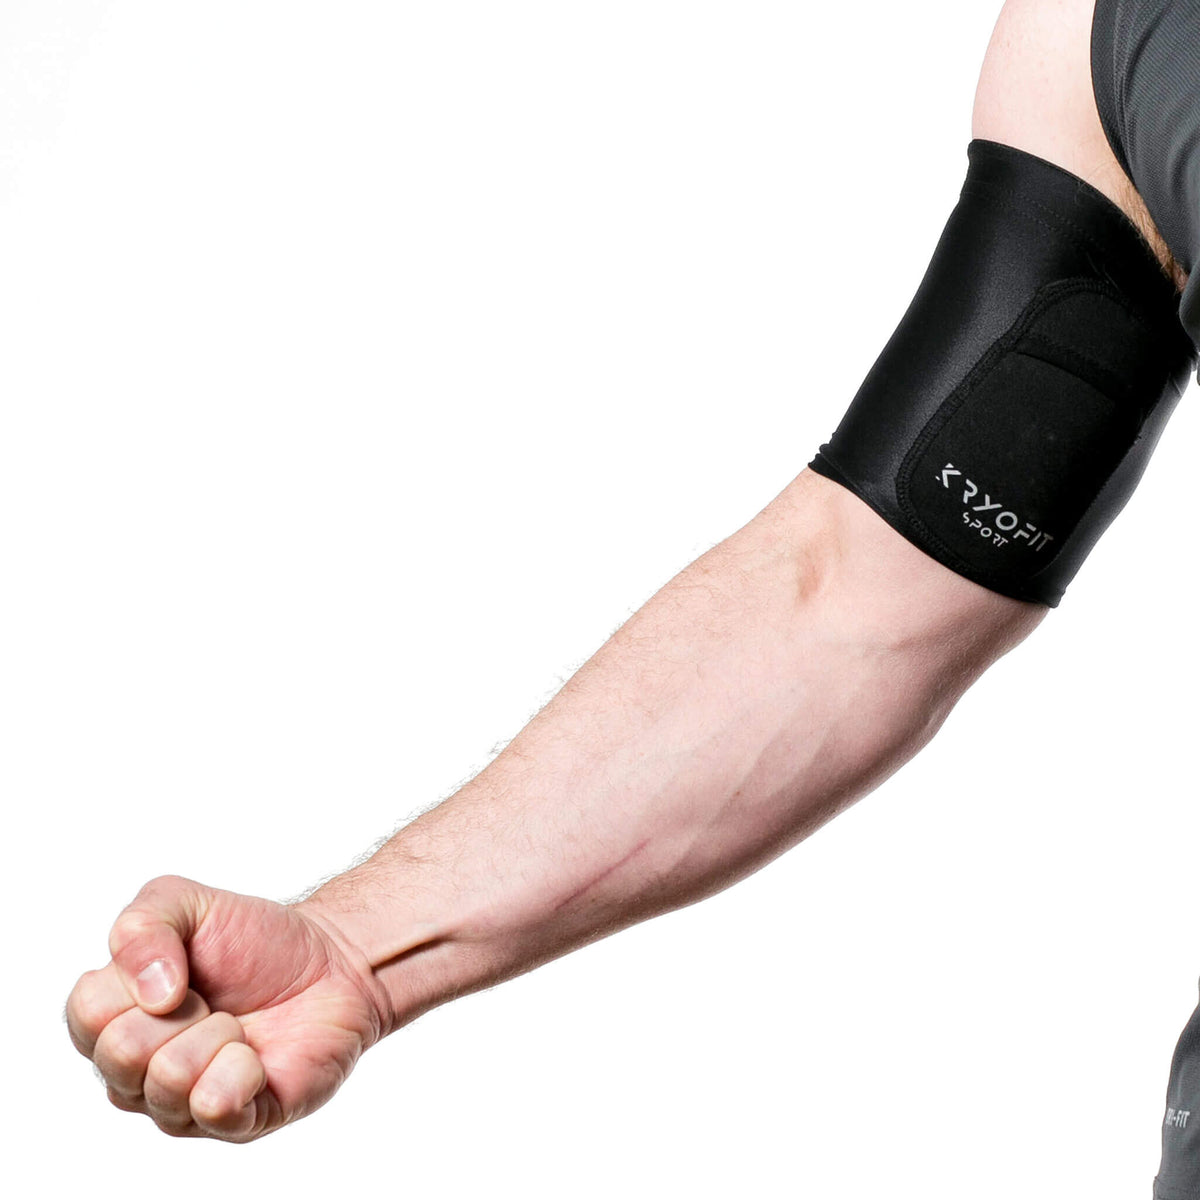 Cold Compression Bicep/Knee Sleeves With Freezable Gel Inserts